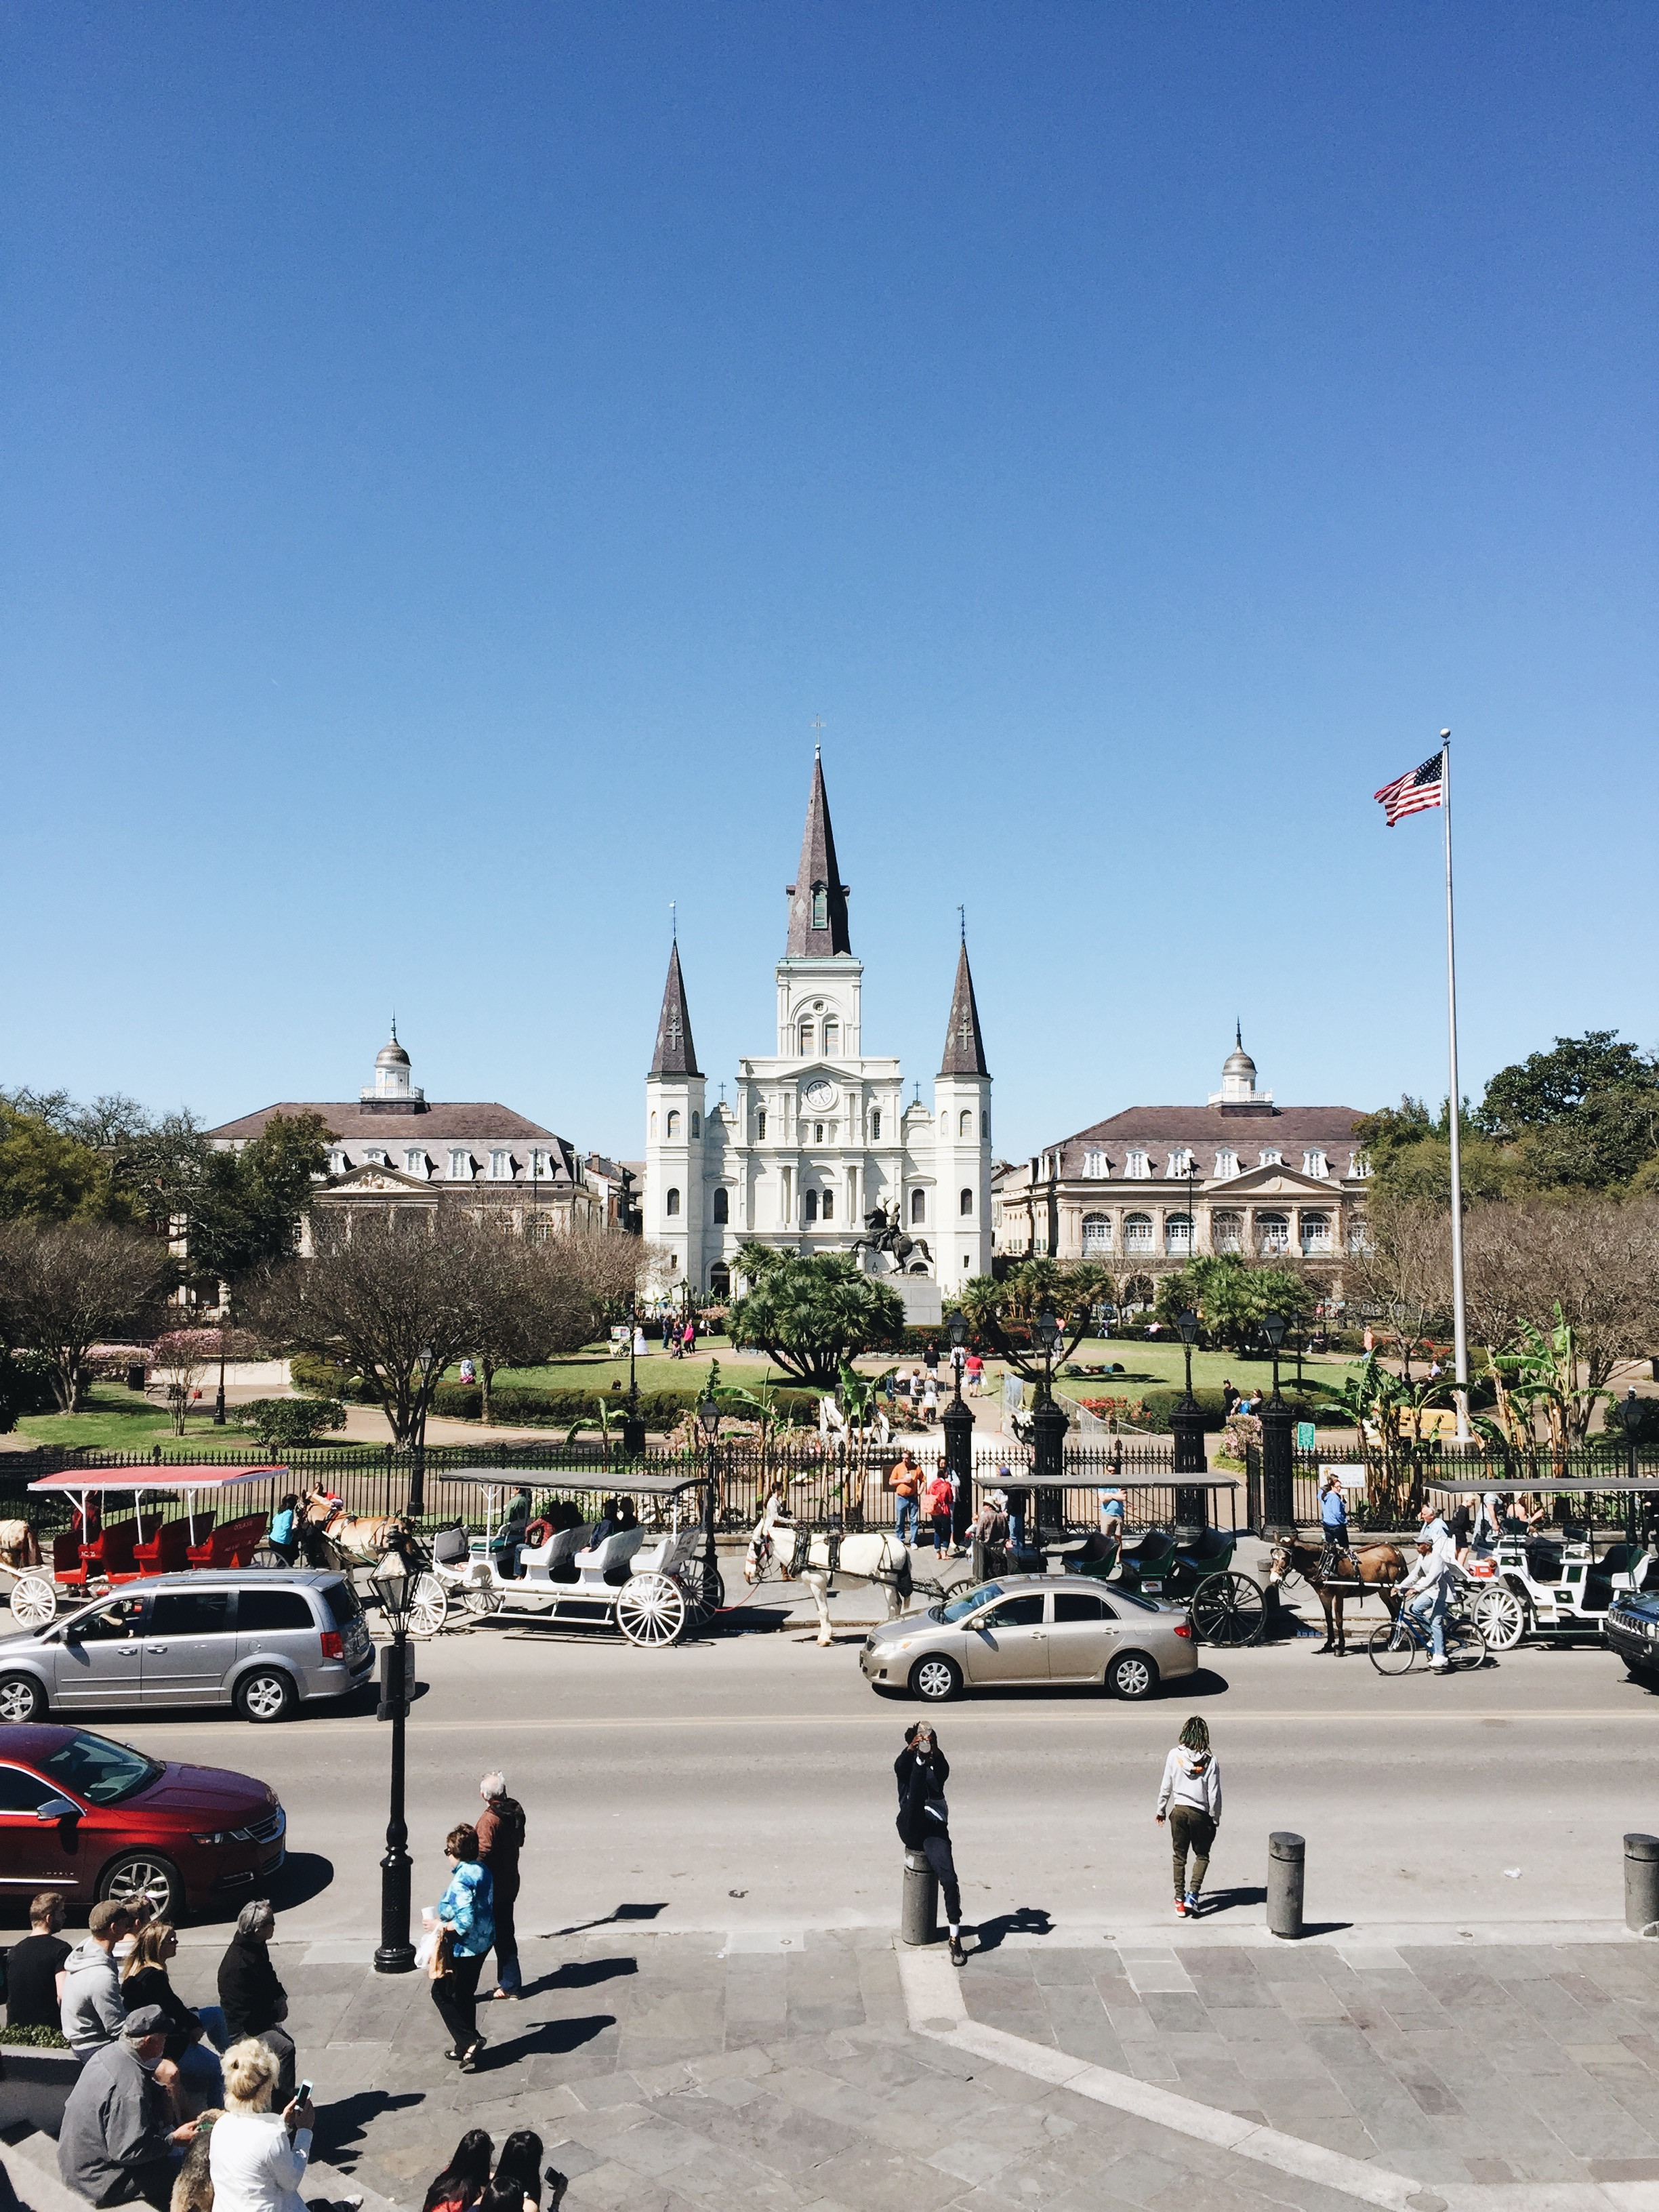 St Louis Cathedral& Jackson Square - This beautiful cathedral is actually where the wedding was held. If you're so inclined, you can attend mass there if you want to see the inside, or you can just wander around the square because there are always buskers playing and artists selling their works. There are also horse-drawn carts and you're within view of the Mississippi.